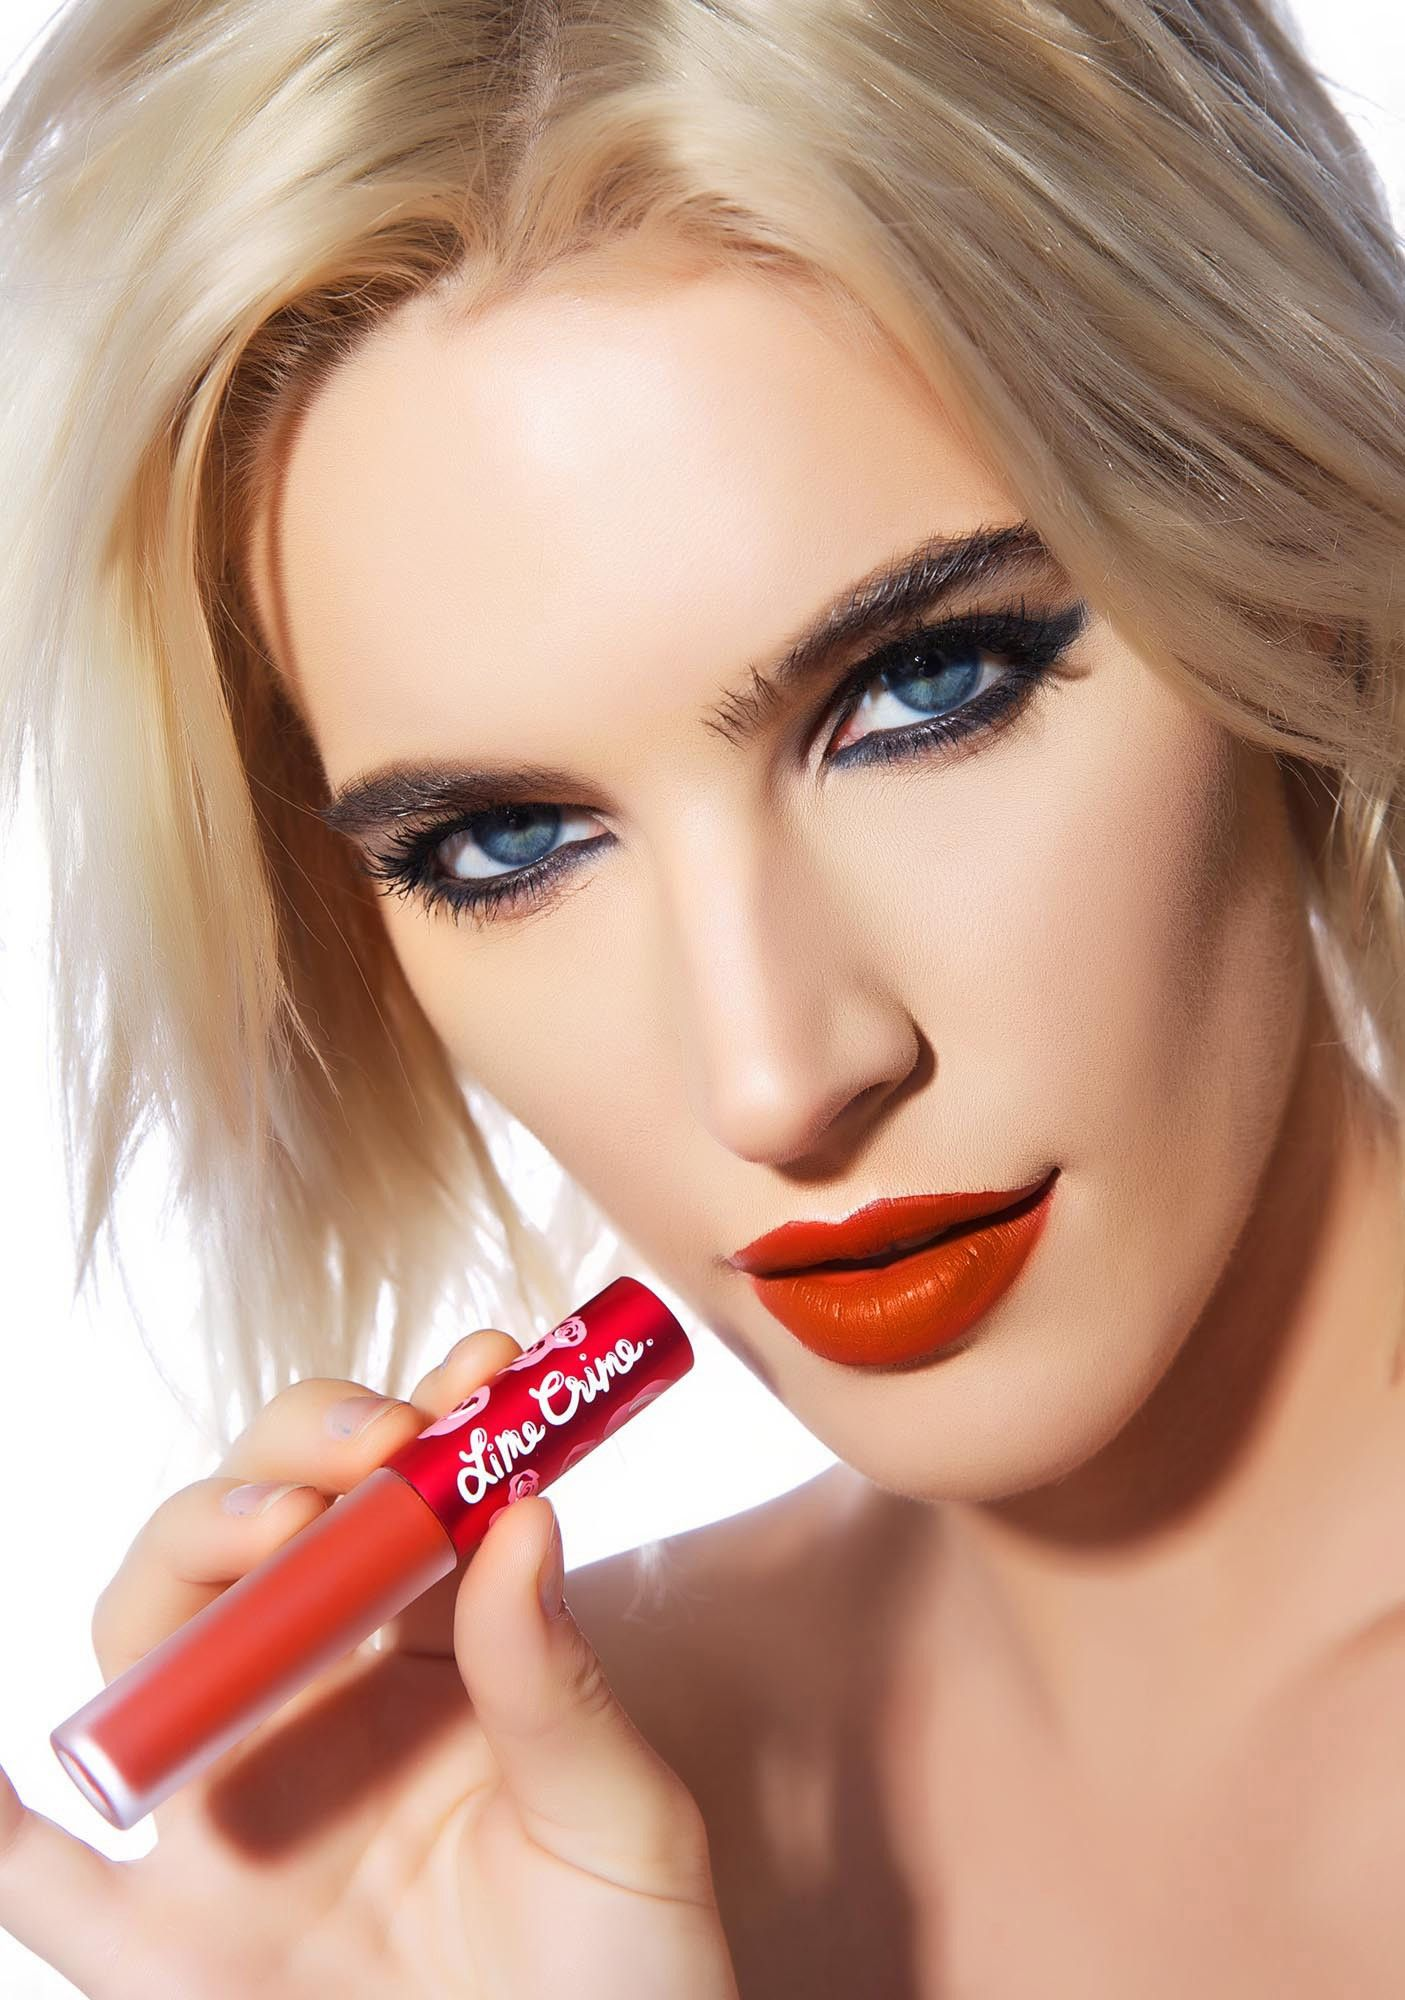 Ivy Levan Nude Great pumpkin velvetine liquid lipstick   lime crime, crime and limes